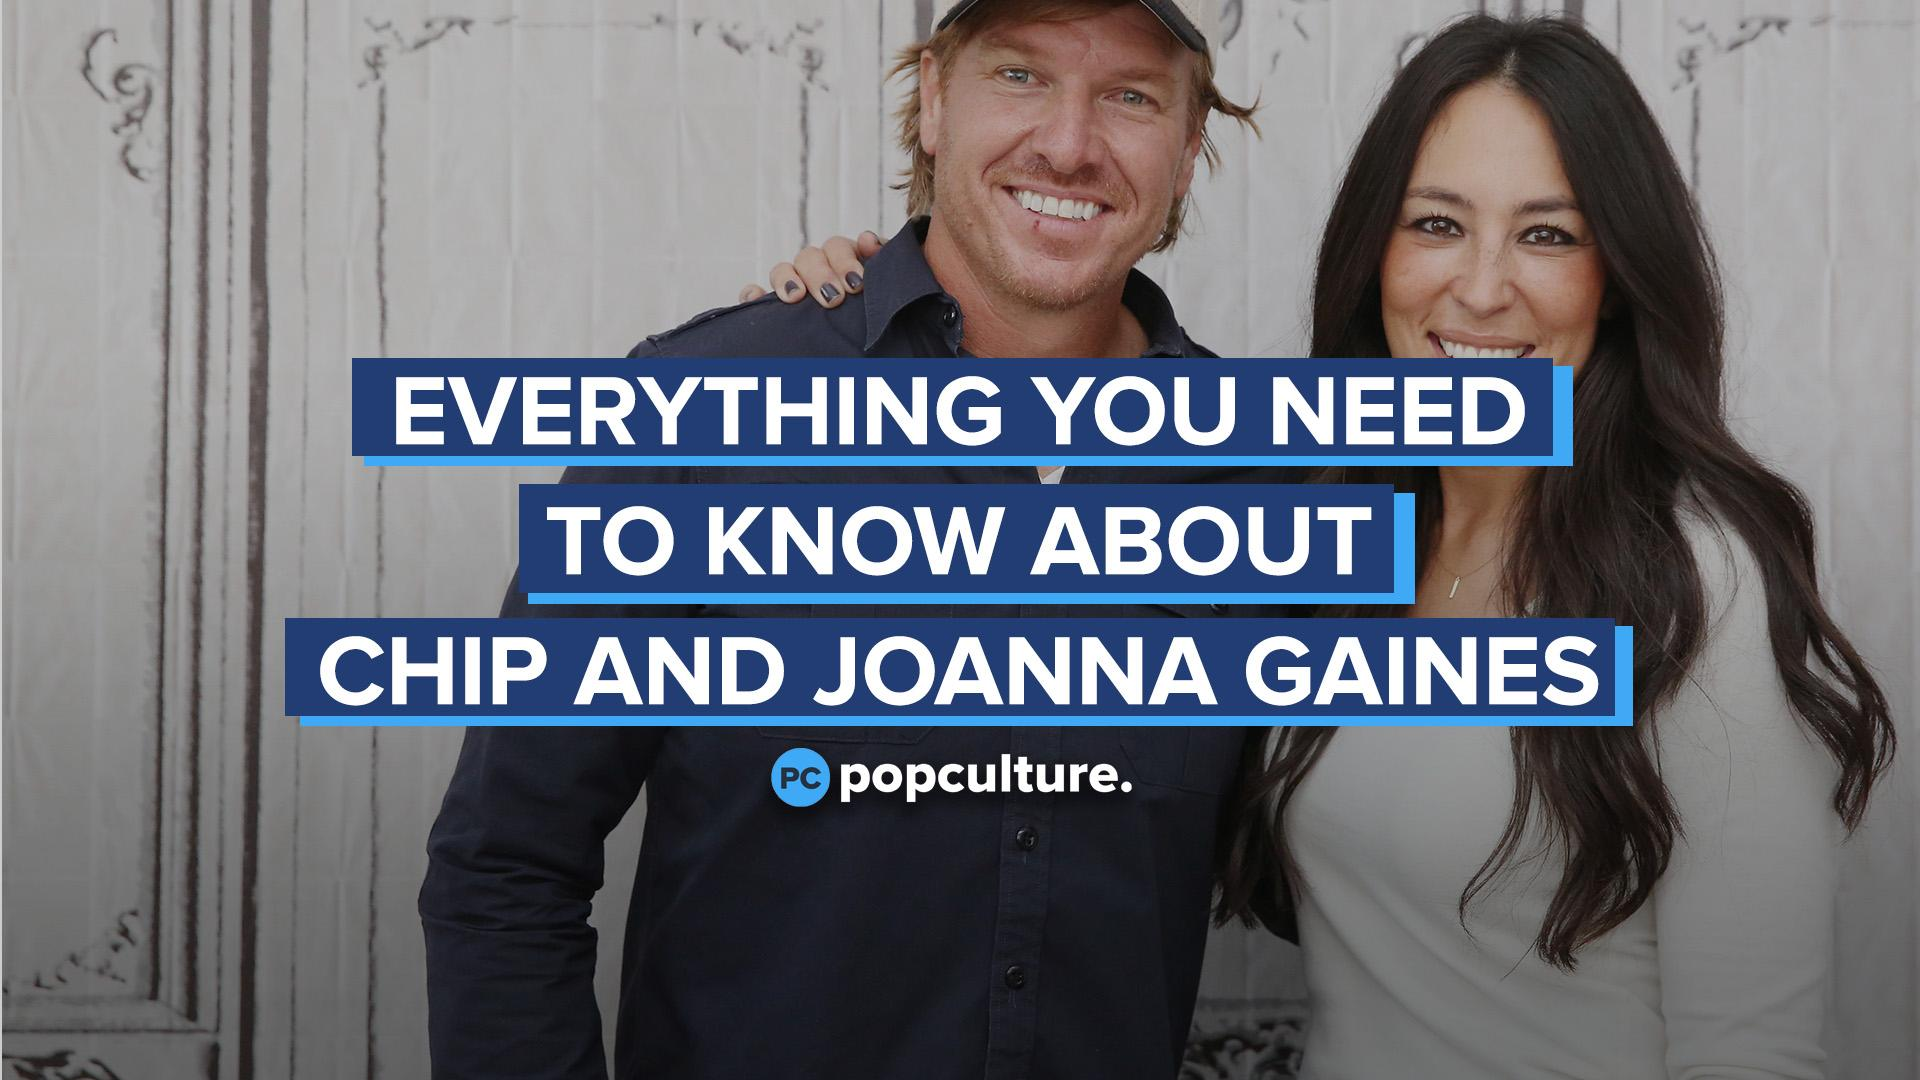 Everything You Need to Know About Chip and Joanna Gaines screen capture